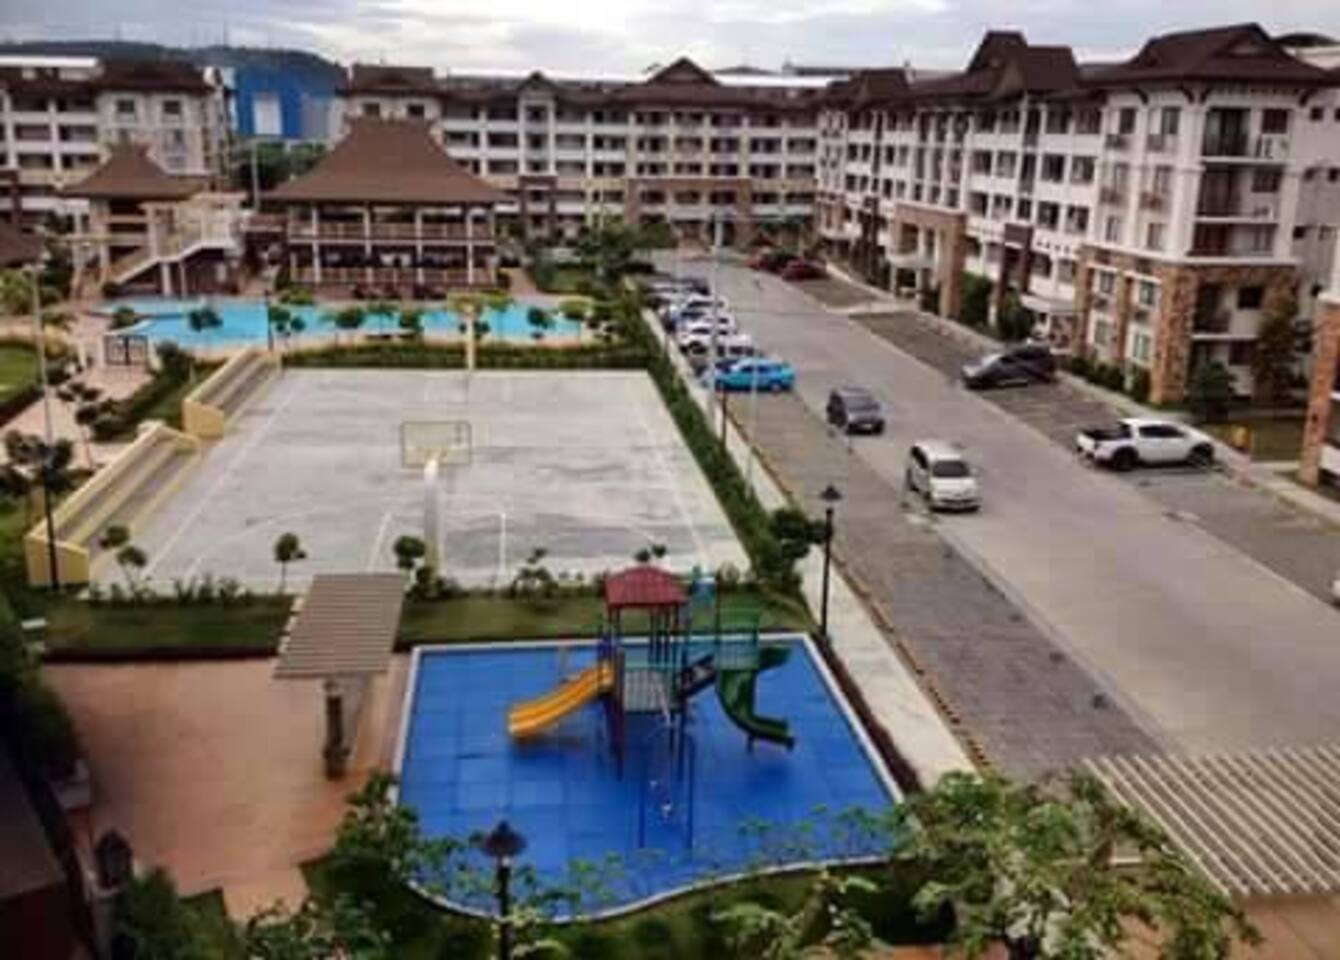 Our Clubhouse, Kiddie Pool, Adult Pool, Basketball Court and Kiddie Playground with Condo Buildings at the back ground.